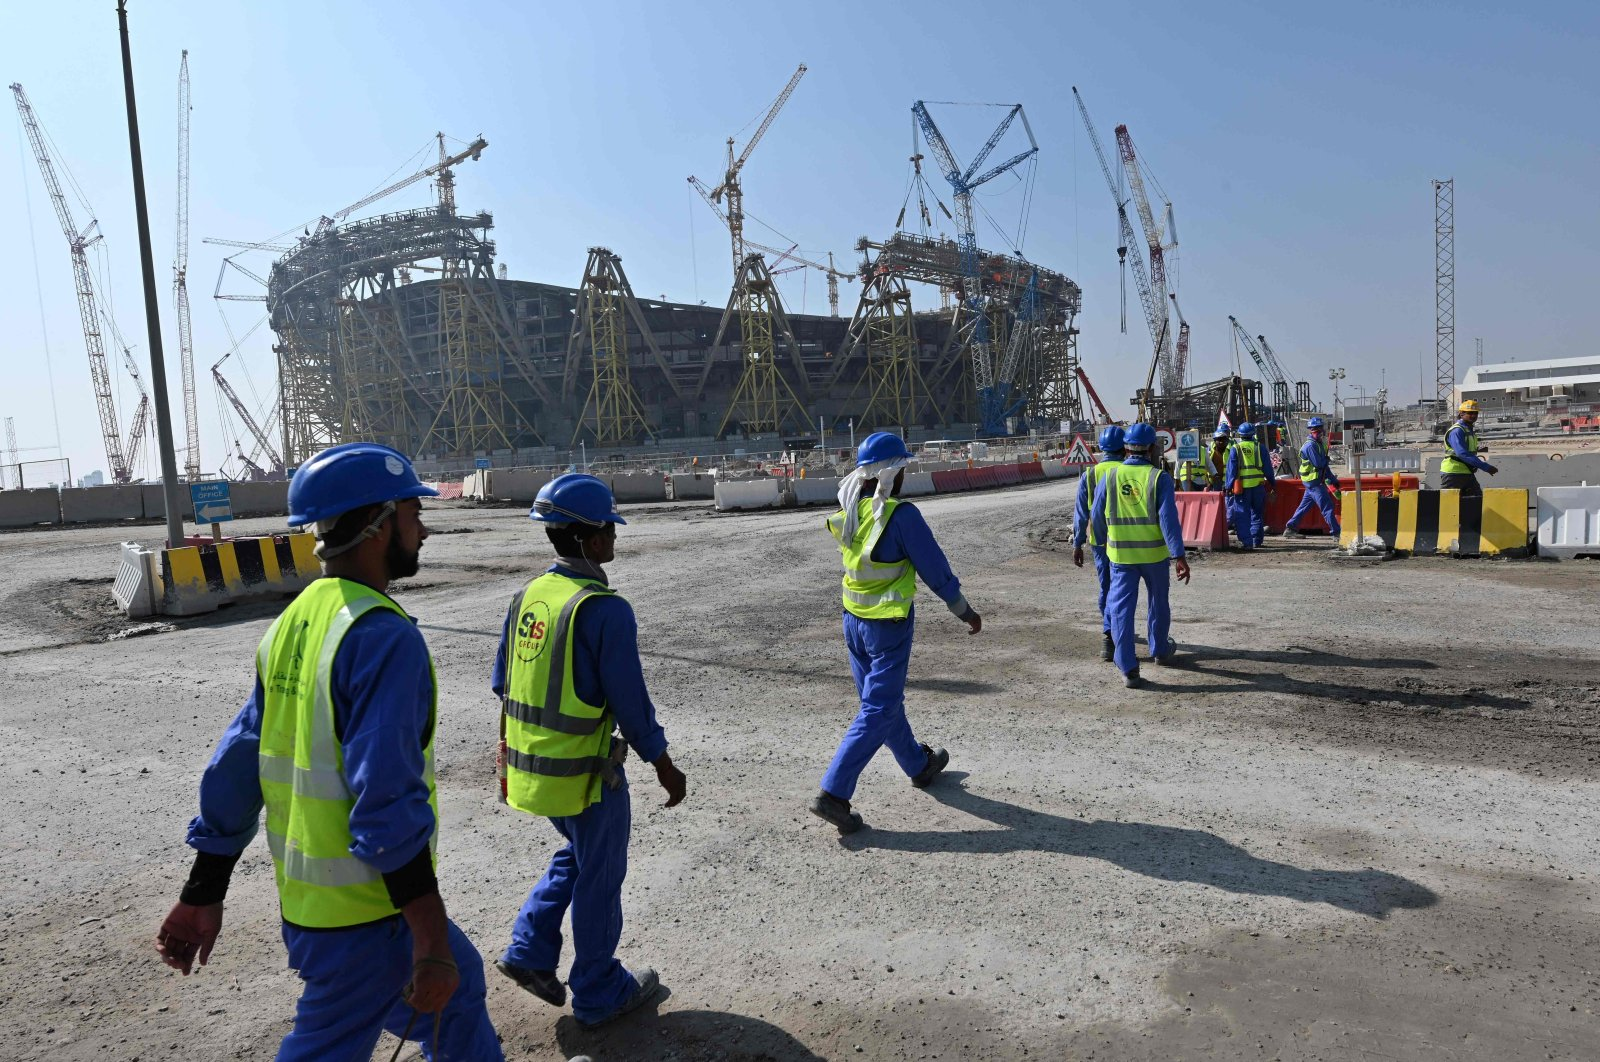 Construction workers walking in front of Qatar's Lusail Stadium while under construction, around 20 kilometers north of the capital Doha, Qatar, on Dec. 20, 2019 (AFP Photo)